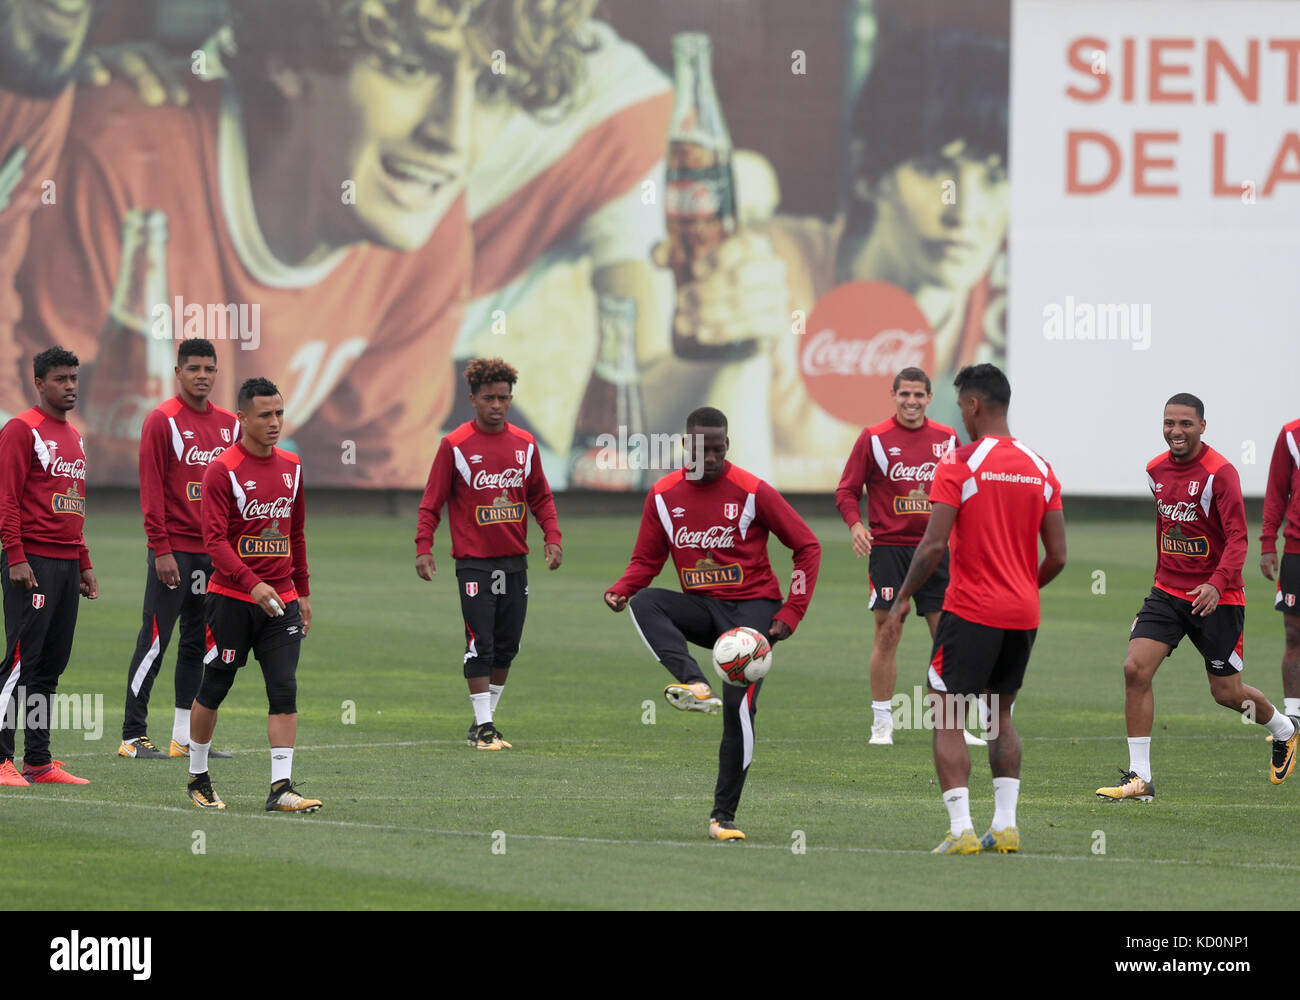 6dd9a7037 Peru s national soccer team players participate in a training session at  the National Sports Villa in Lima